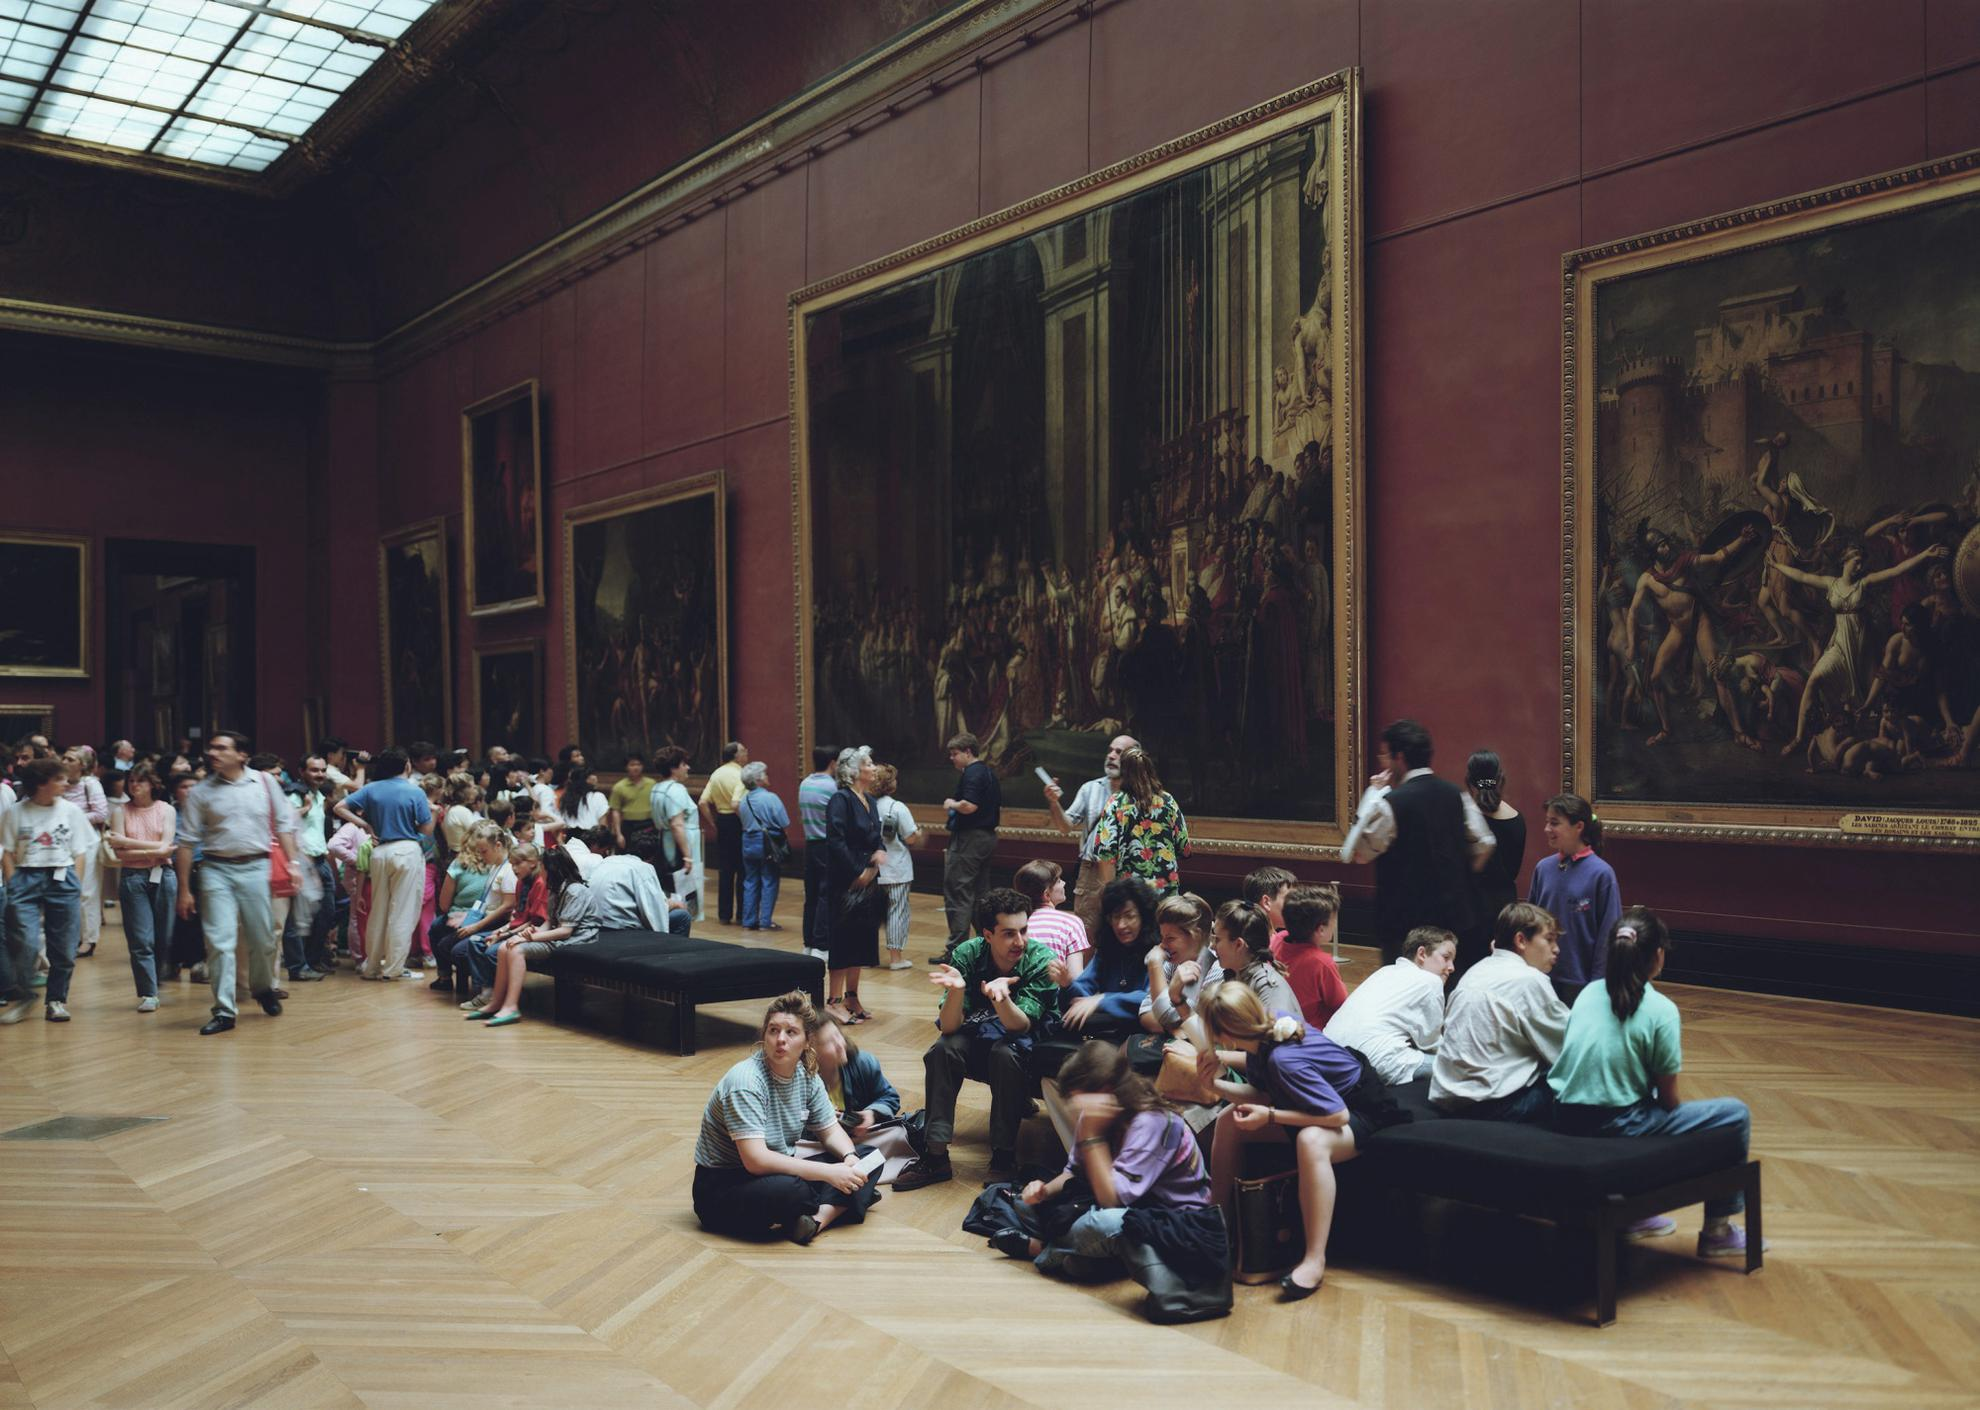 Thomas Struth-Louvre 1, Paris-1989